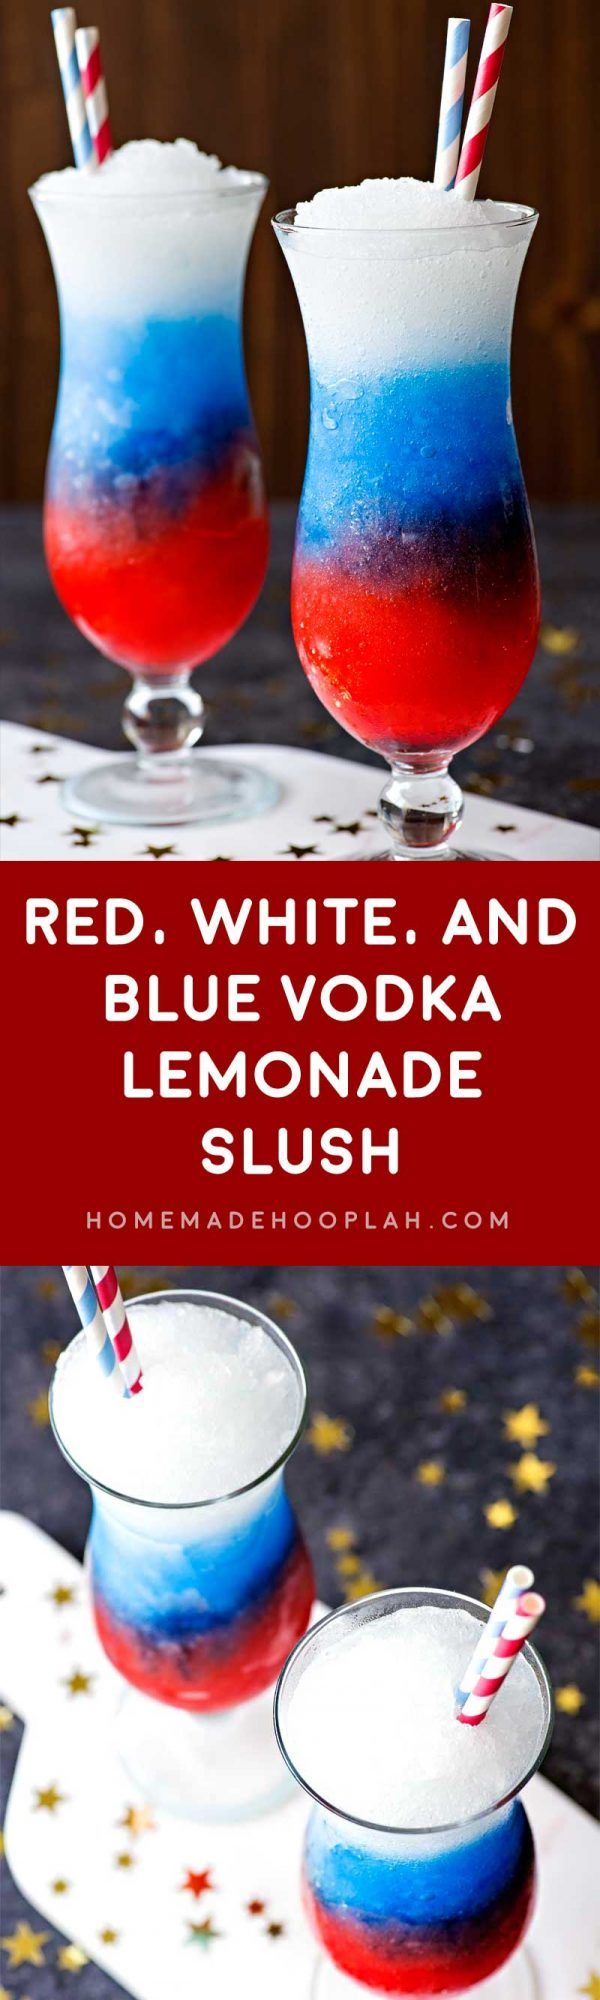 Red White and Blue Vodka Lemonade Slush! Celebrate your patriotism with a refreshing slush made with grenadine, blue curacao, and spiked lem...